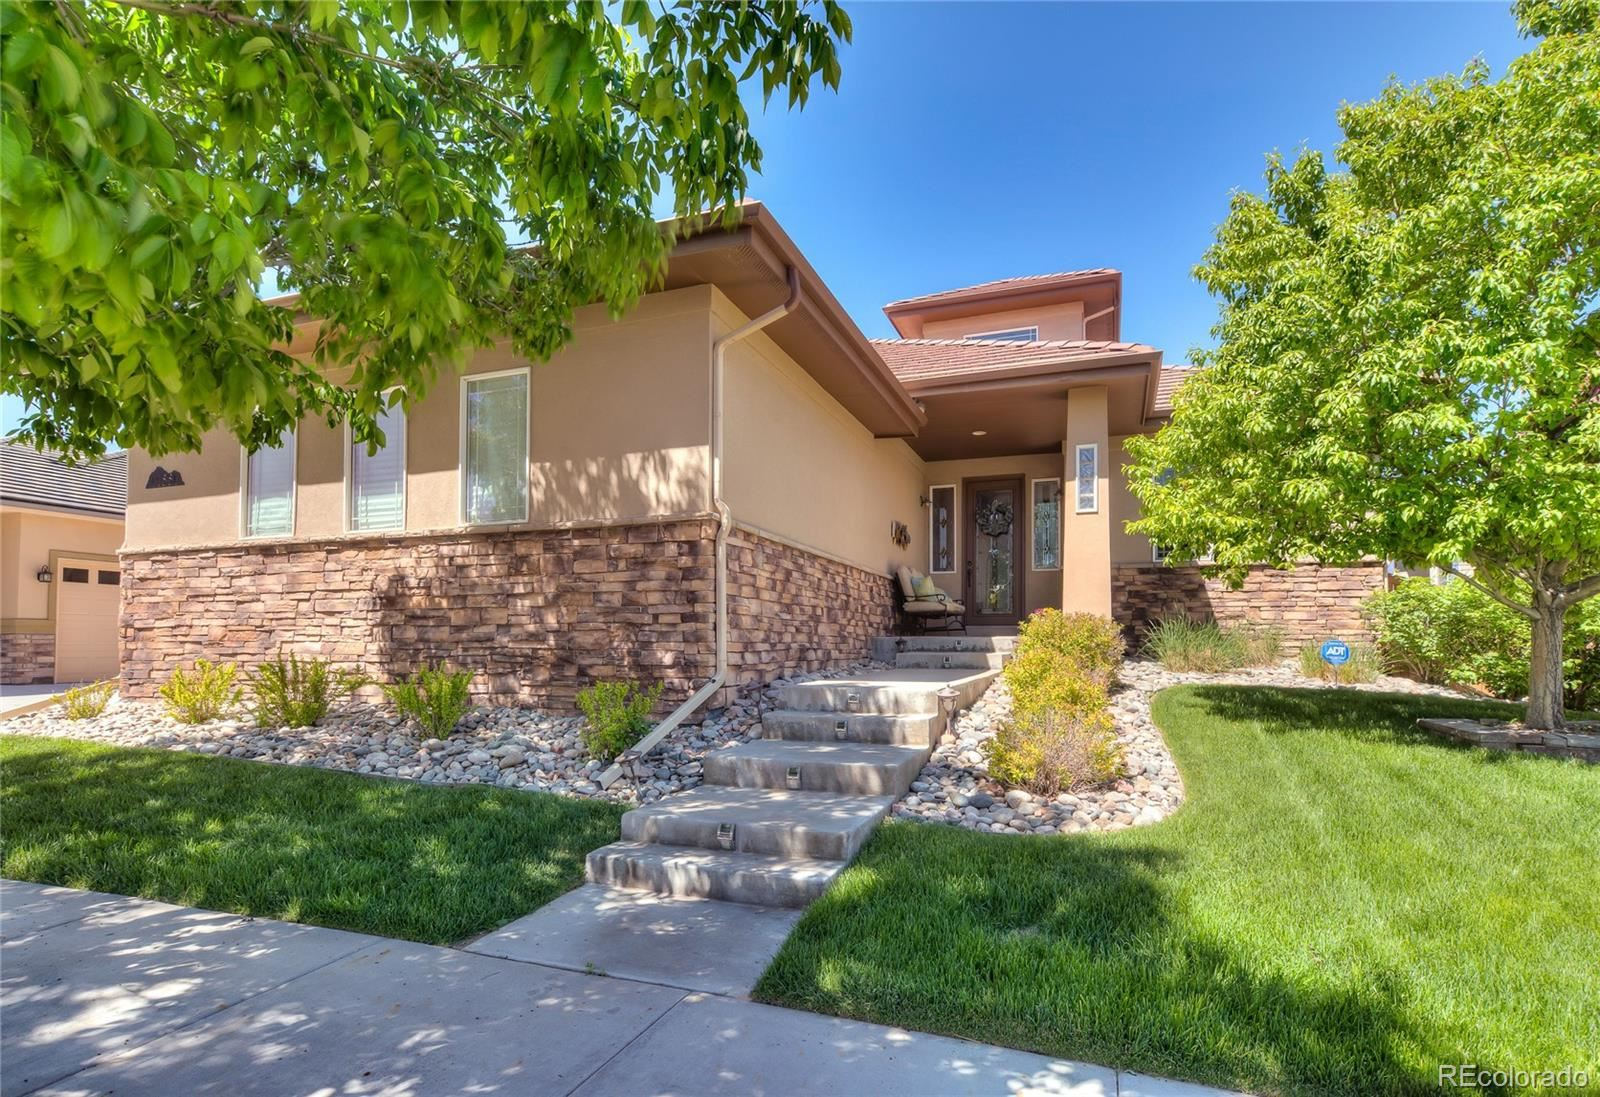 11551 Chambers Drive, Commerce City, CO 80022 - #: 1756831